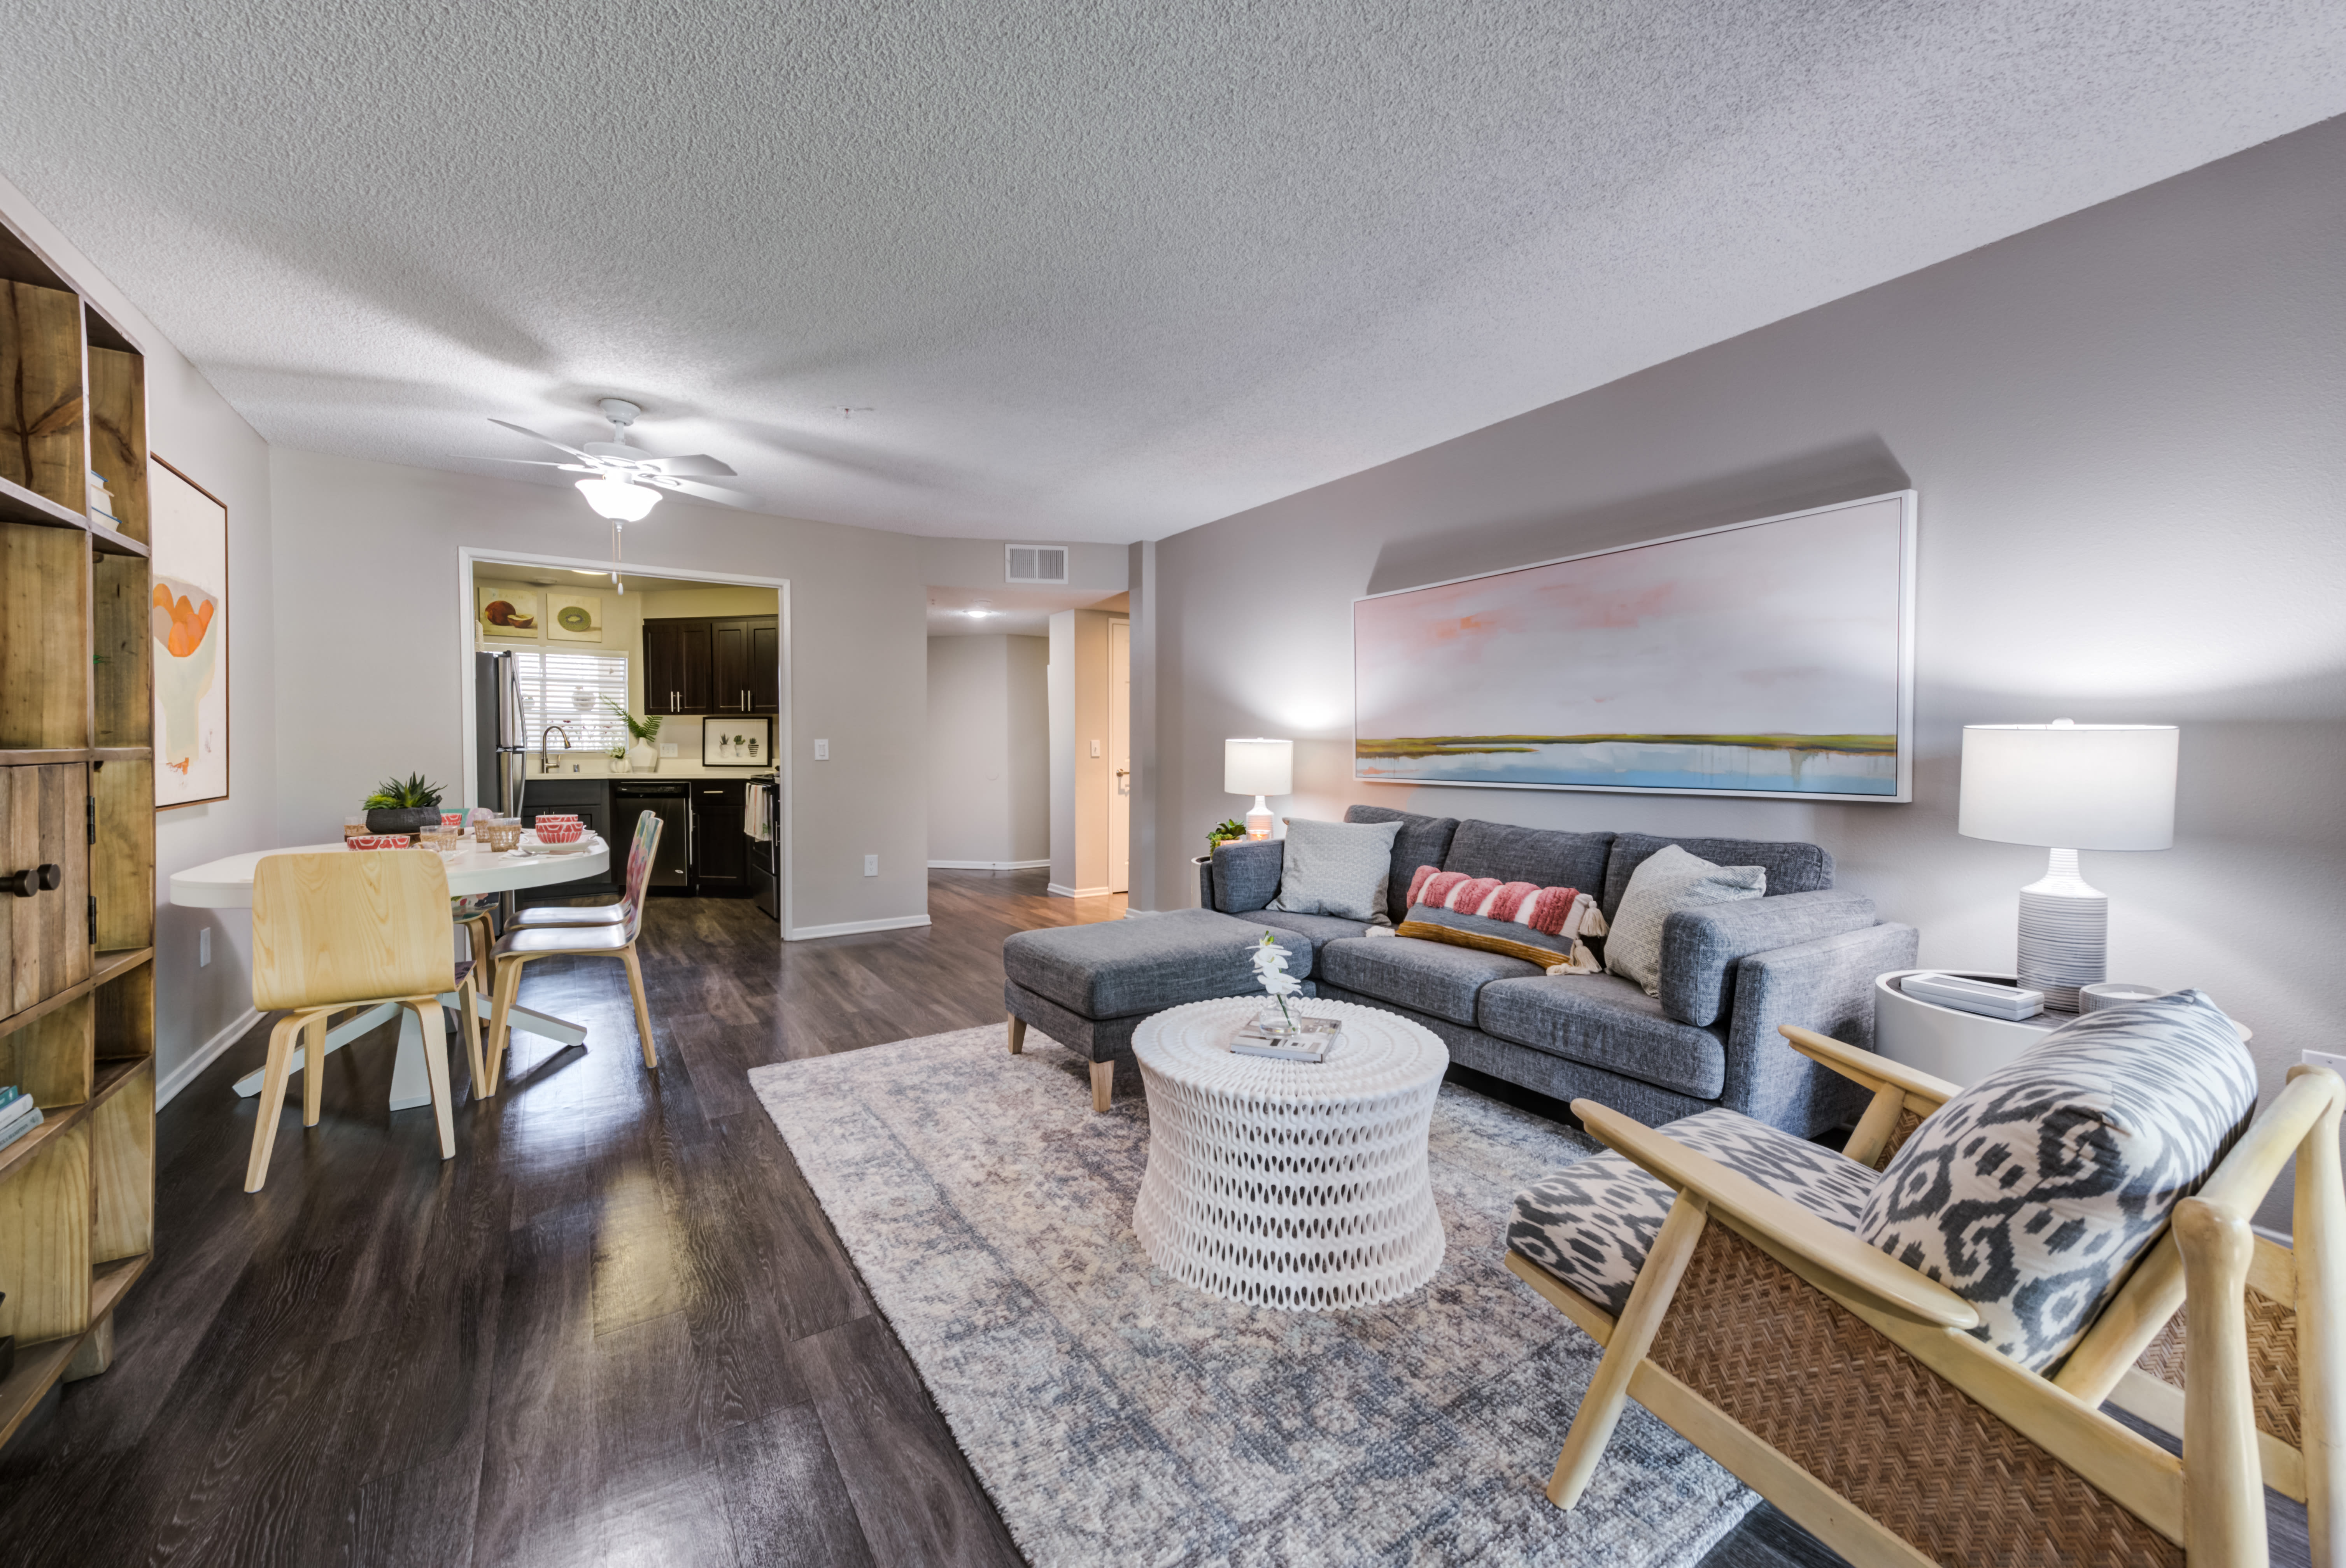 Living Room at Sierra Heights Apartments in Rancho Cucamonga, California